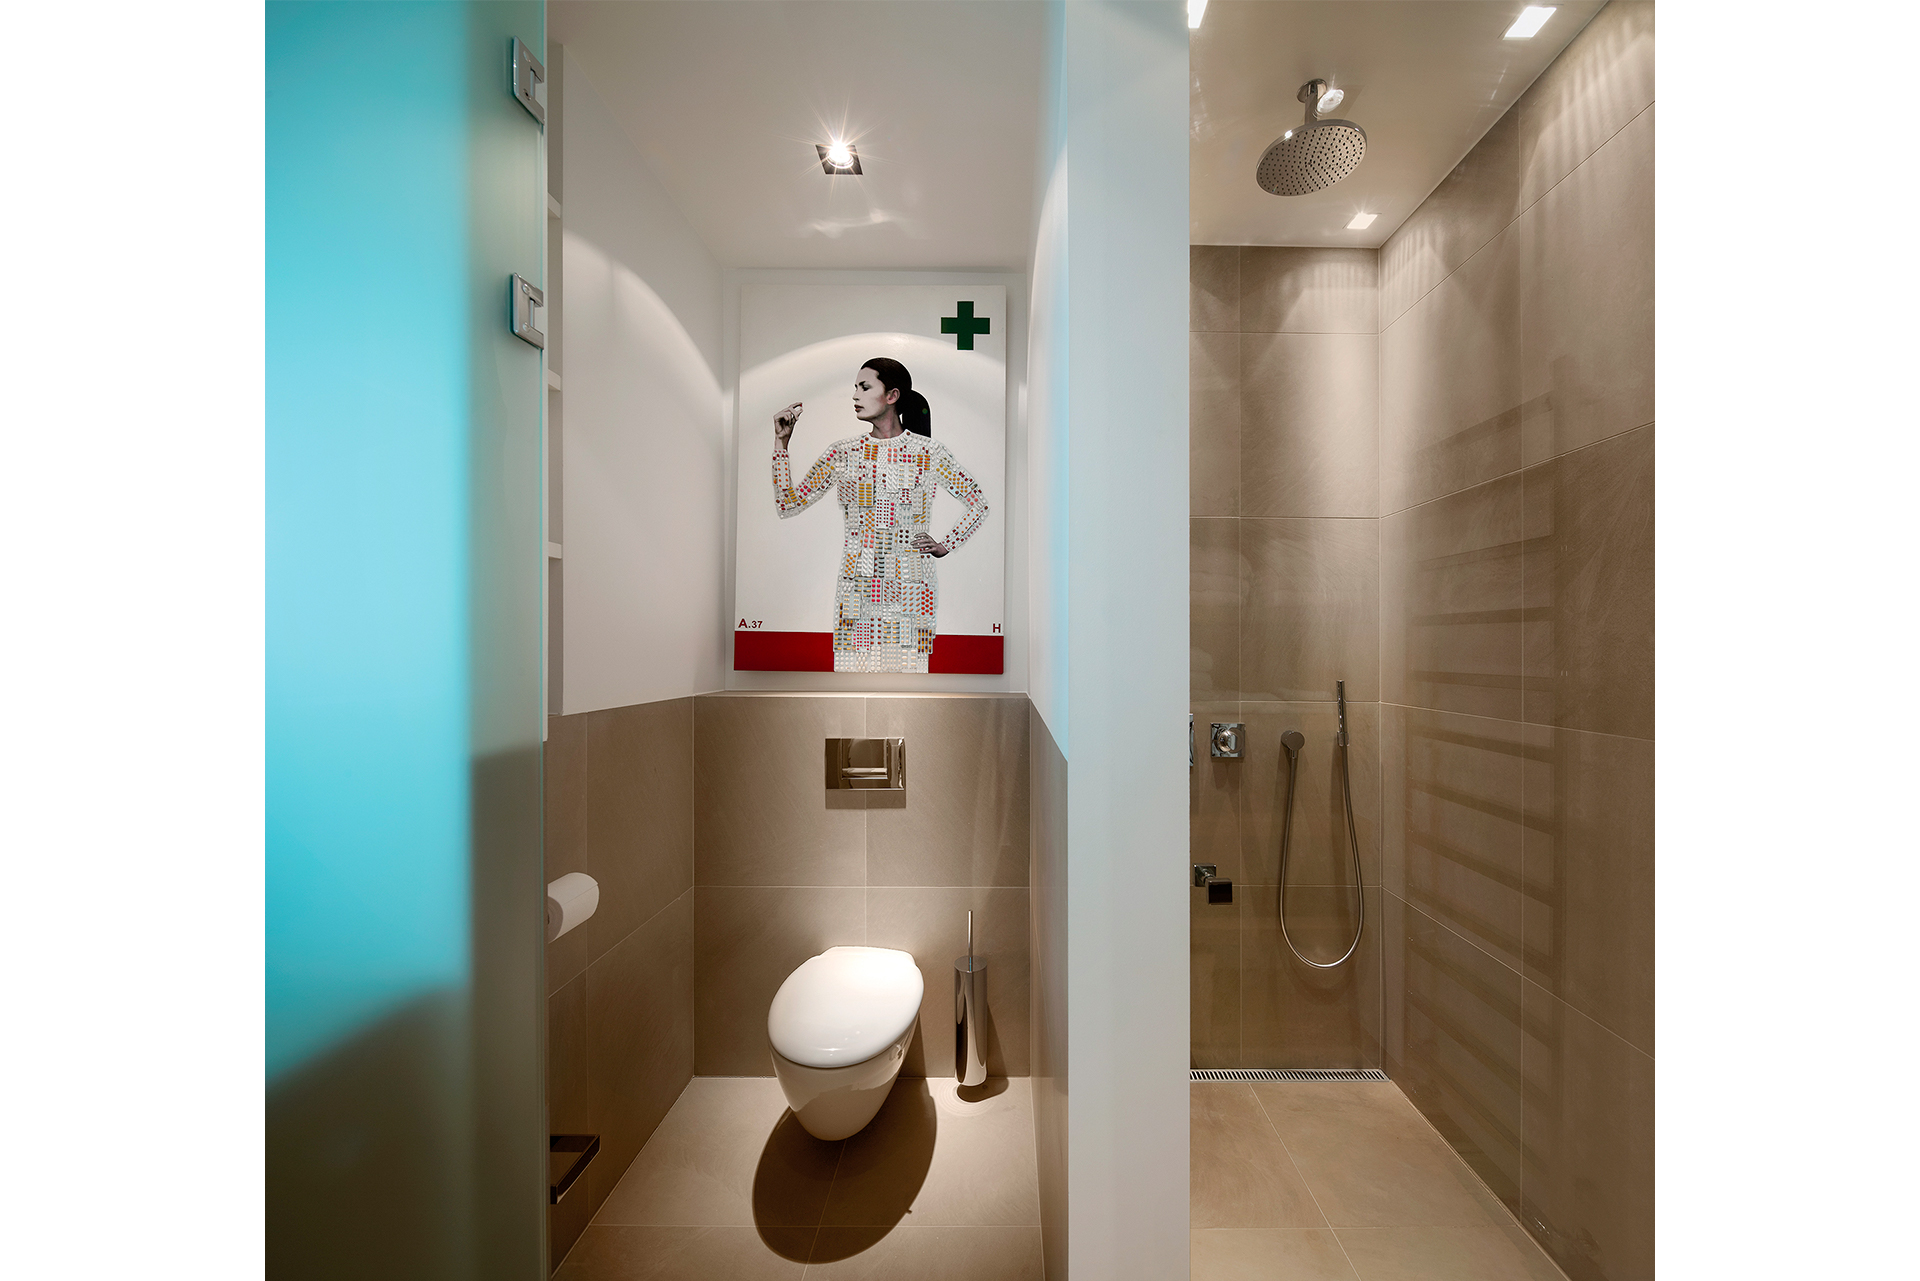 Bathroom with warm beige tiles housing a toilet and rain shower